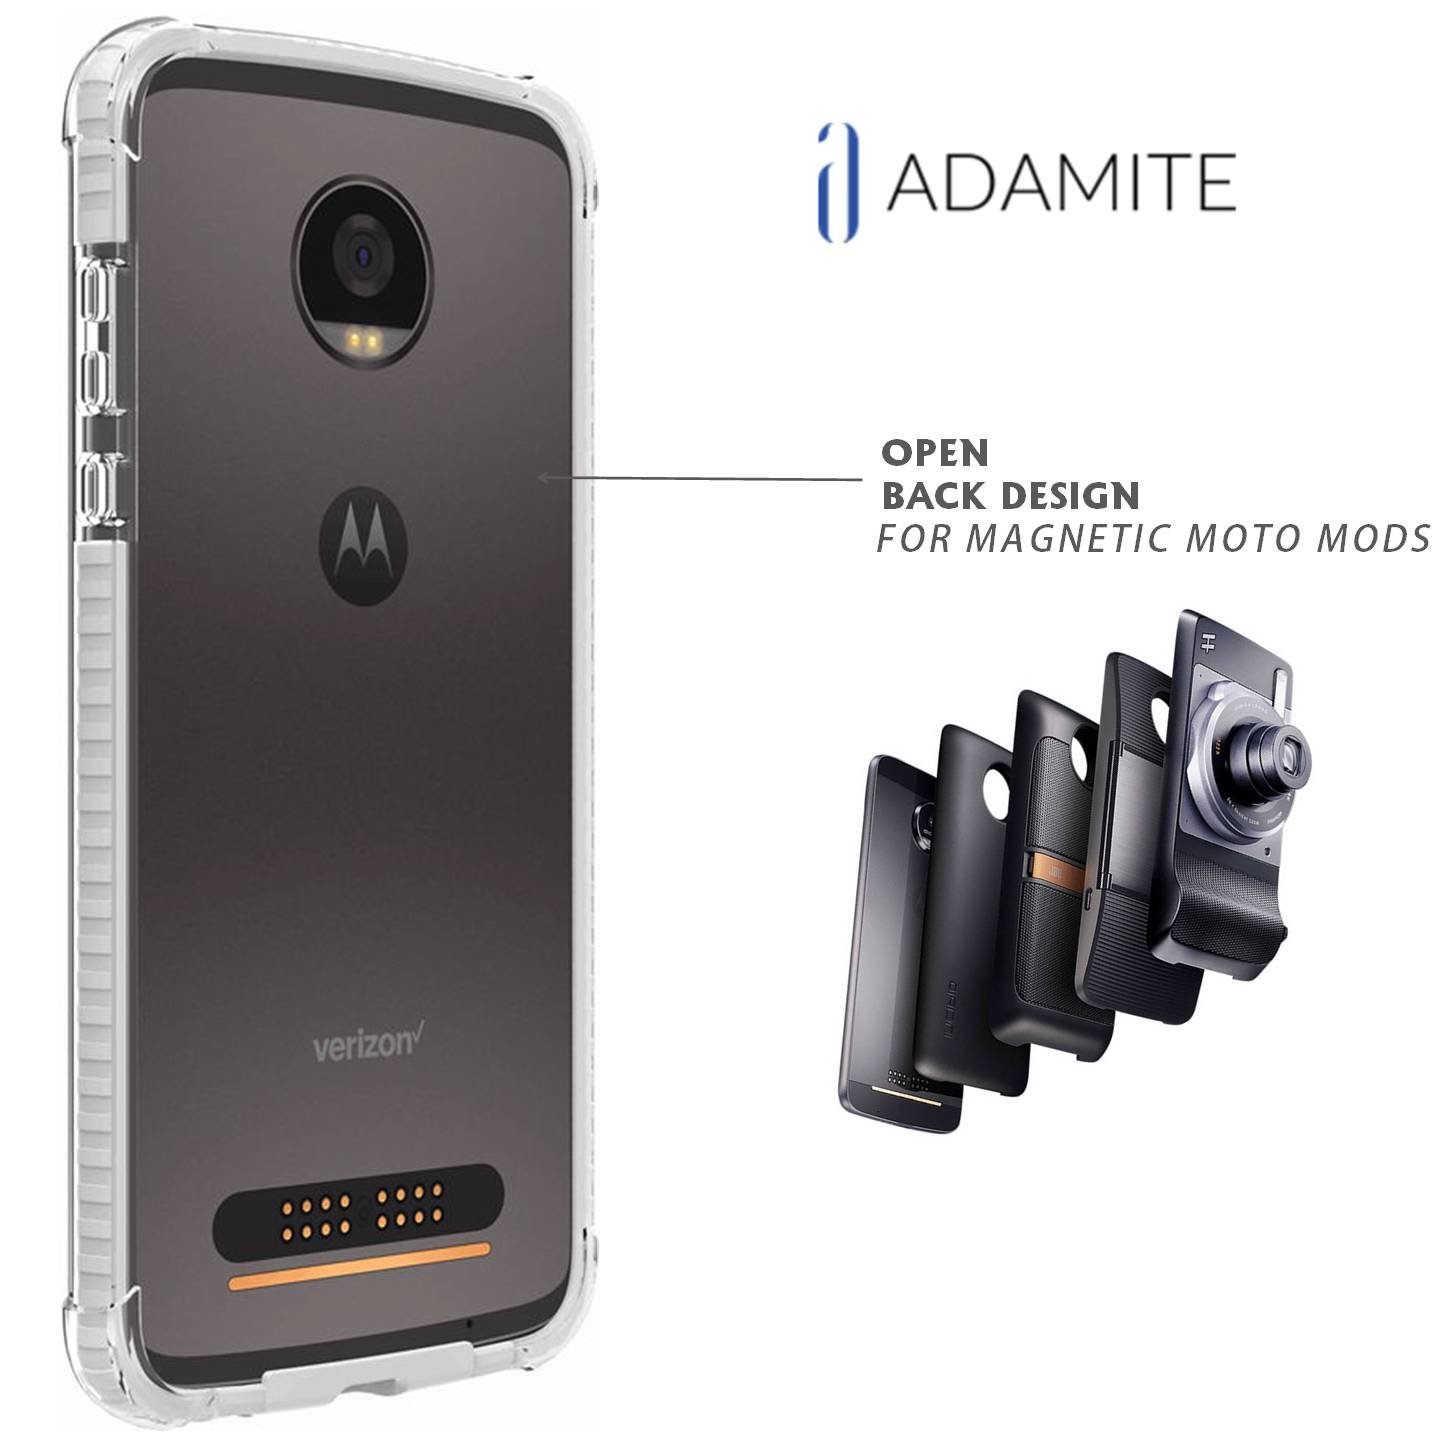 pretty nice ab962 8b964 Details about Moto Z2 Force Case Bumper White / Clear Compatible With Moto  Mods ( Ademite )